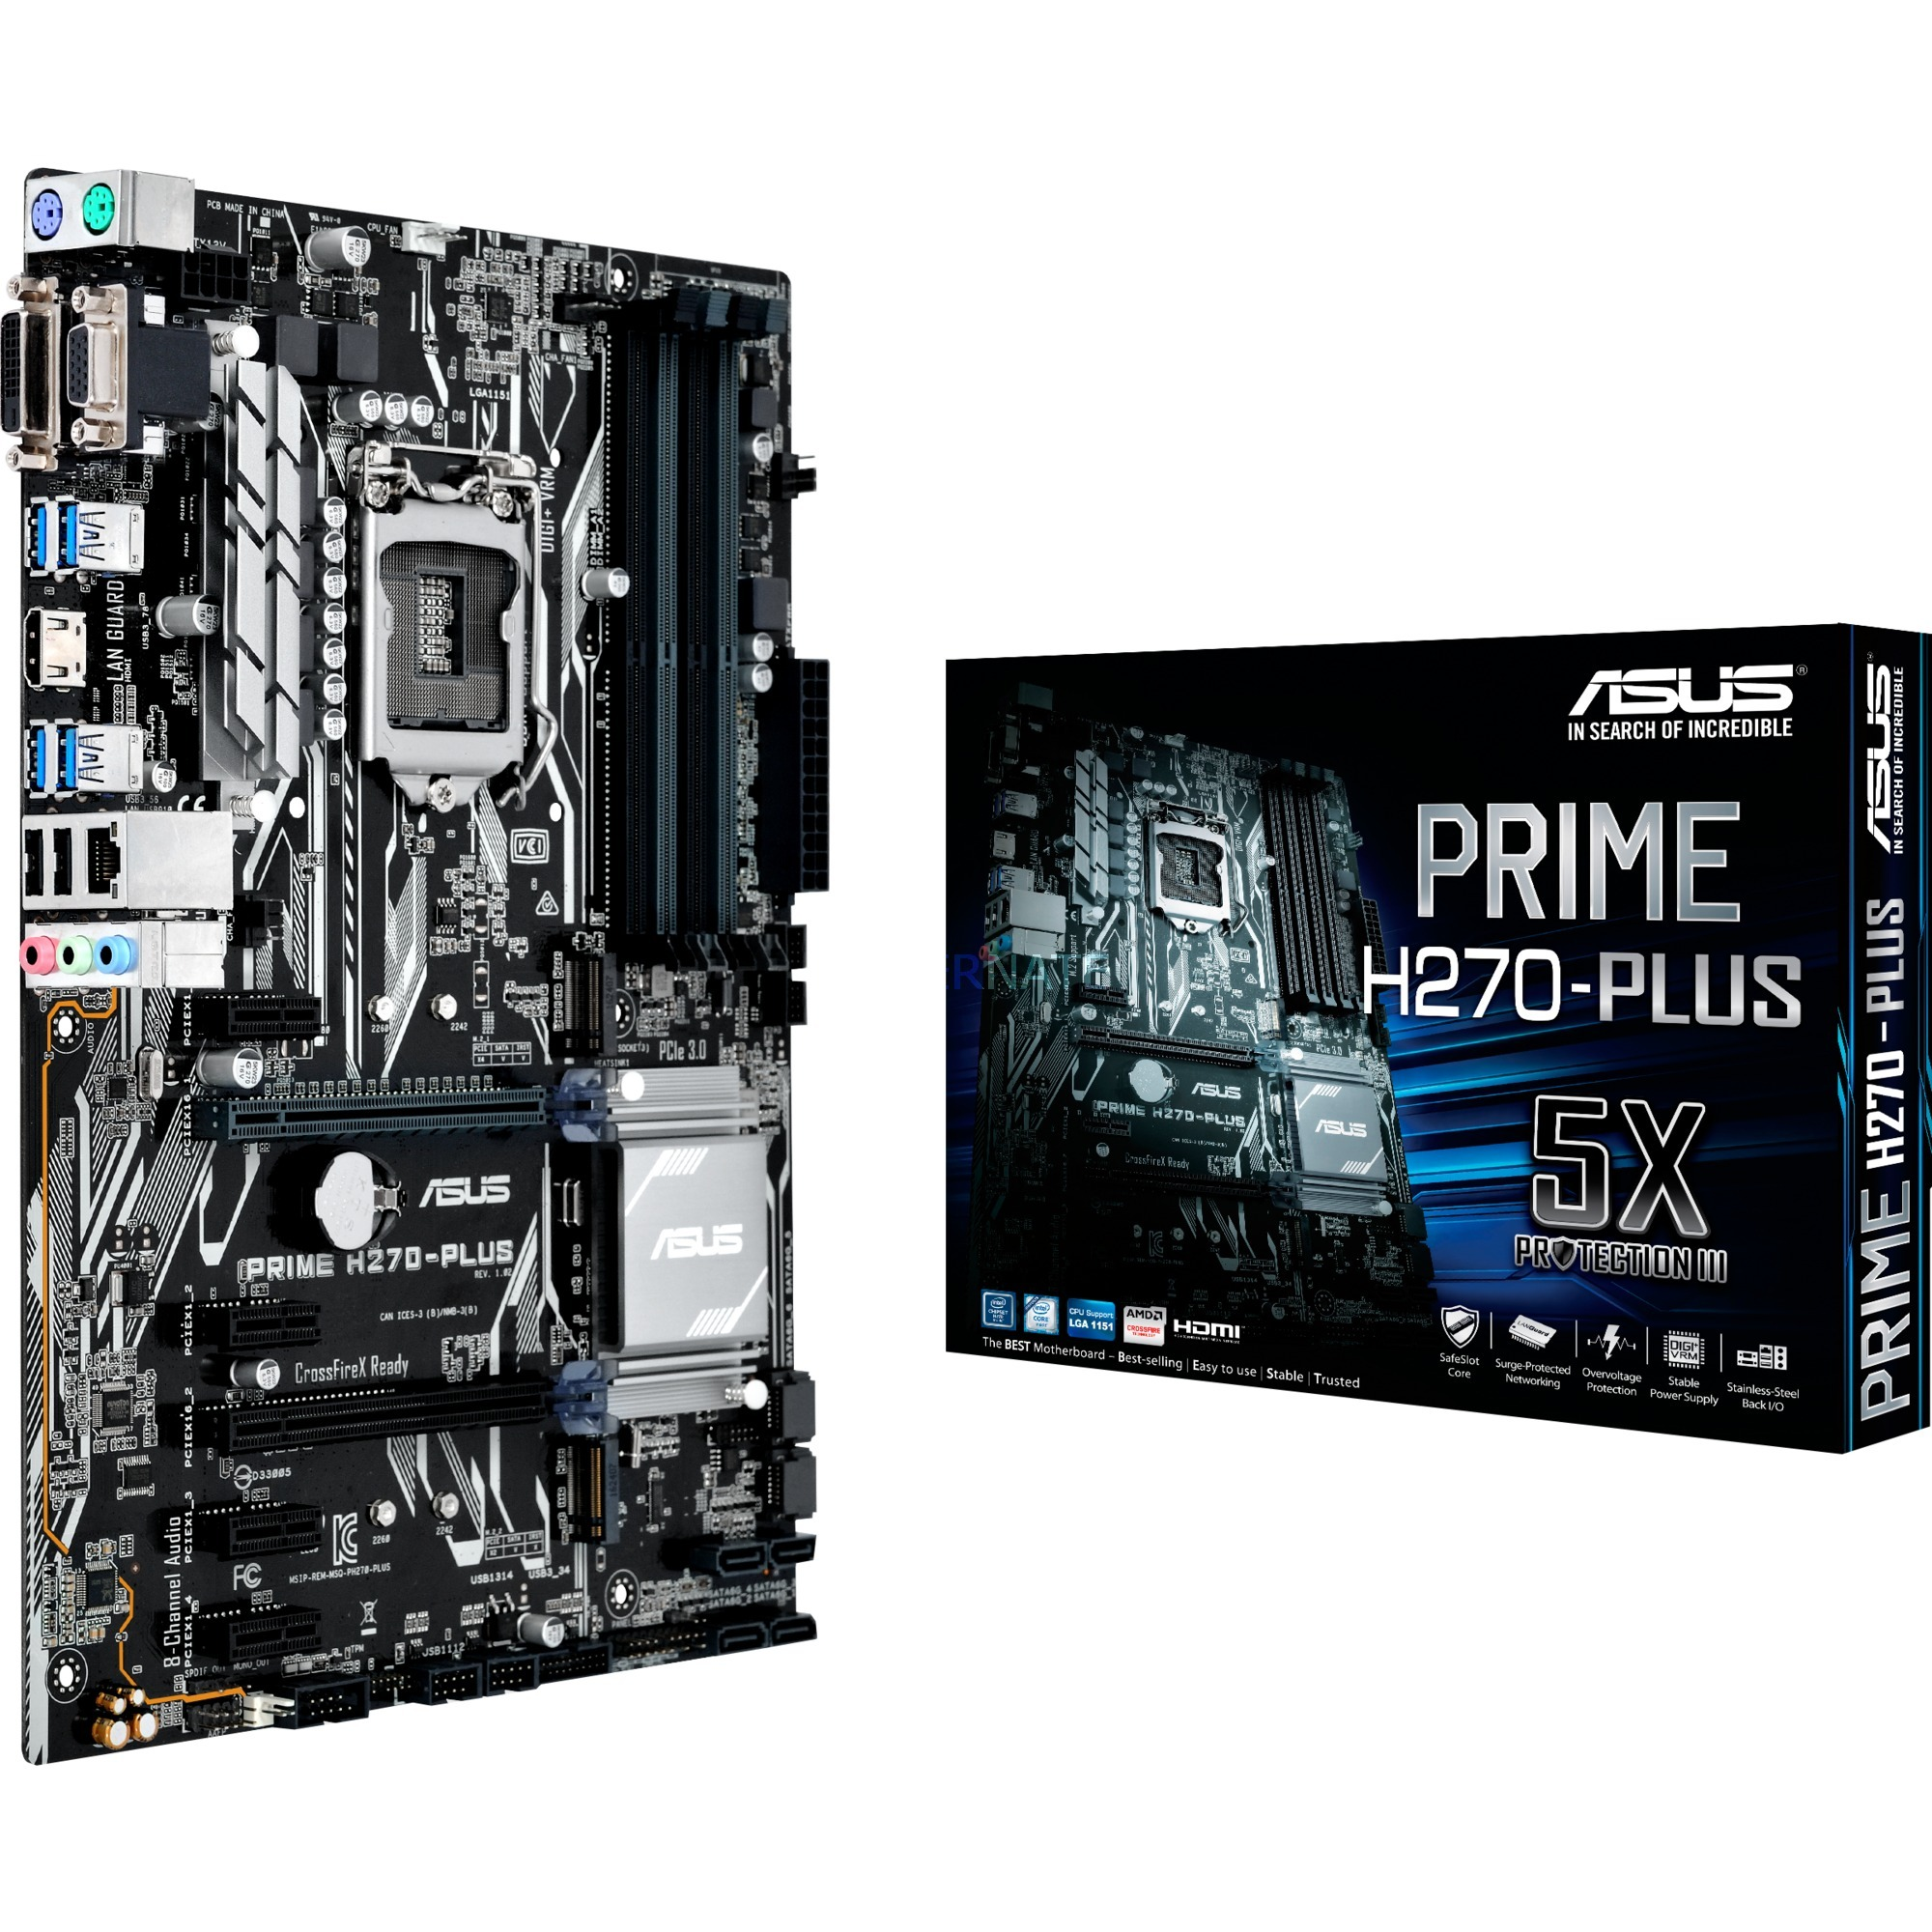 PRIME H270-PLUS Intel H270 LGA 1151 (Socket H4) ATX carte mère